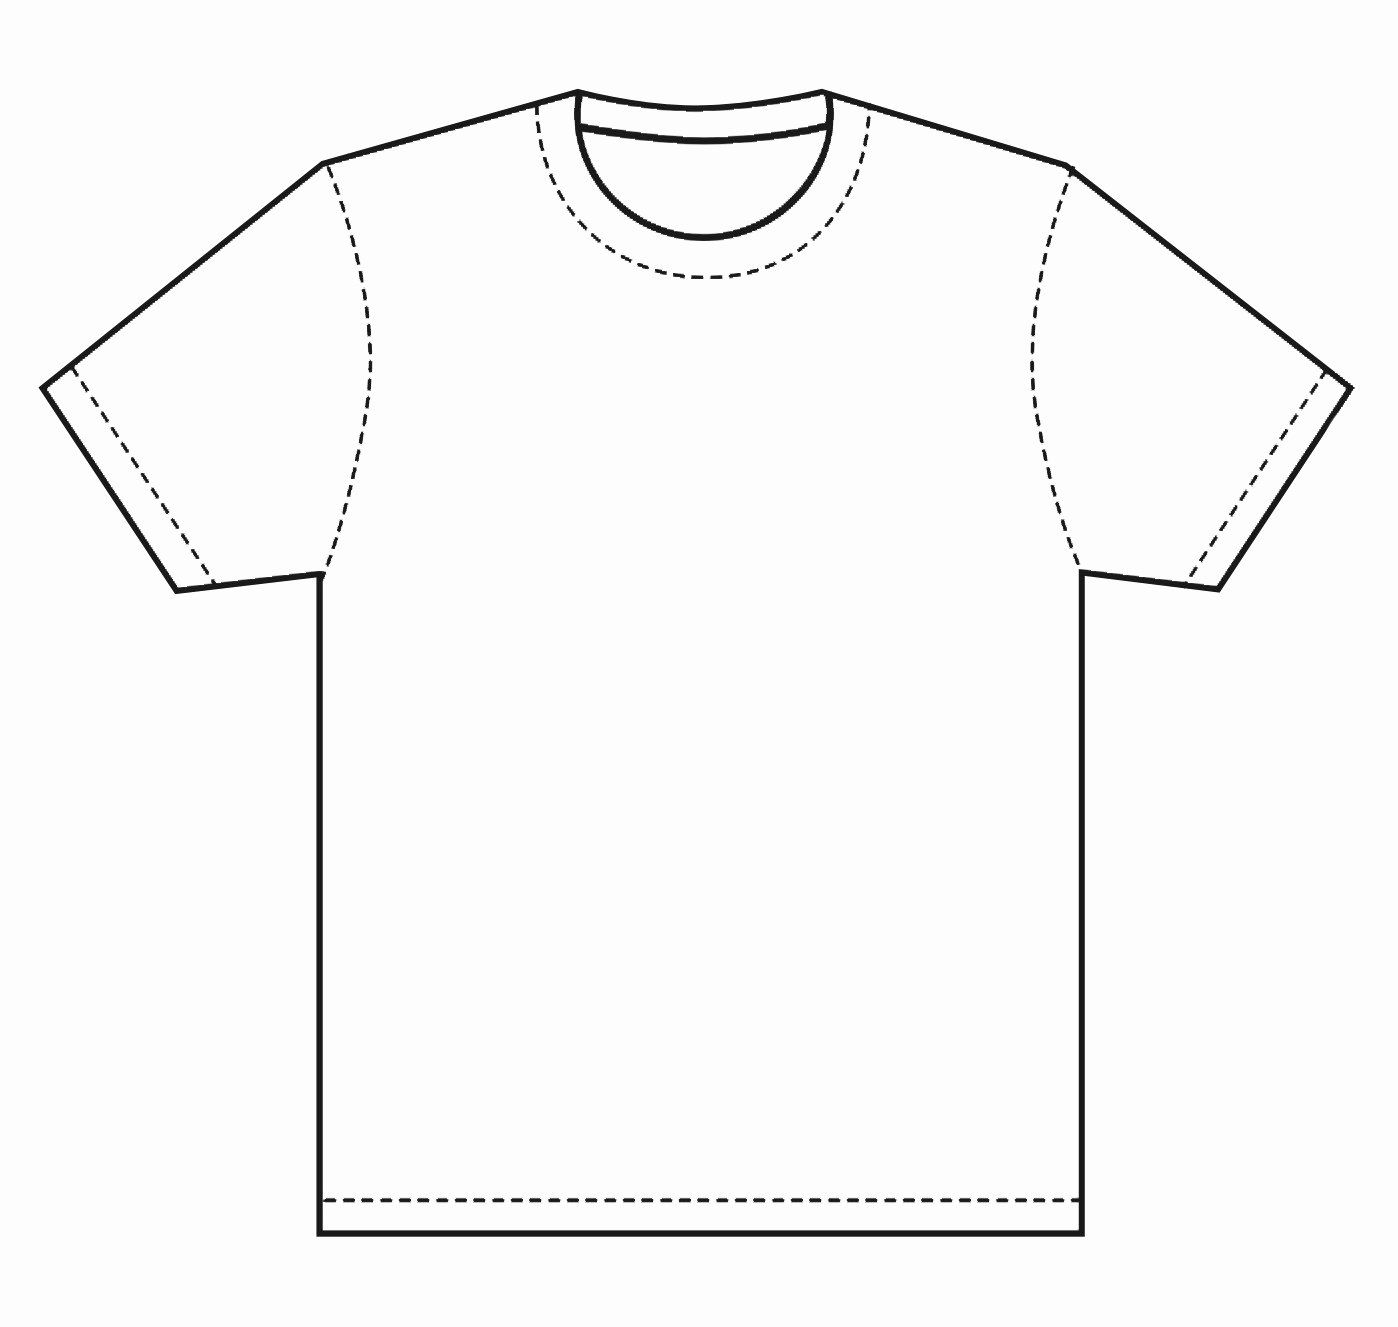 Blank Tshirt Template Awesome Blank T Shirt Coloring Page Thekindproject Shirt Sketch Shirt Drawing T Shirt Design Template